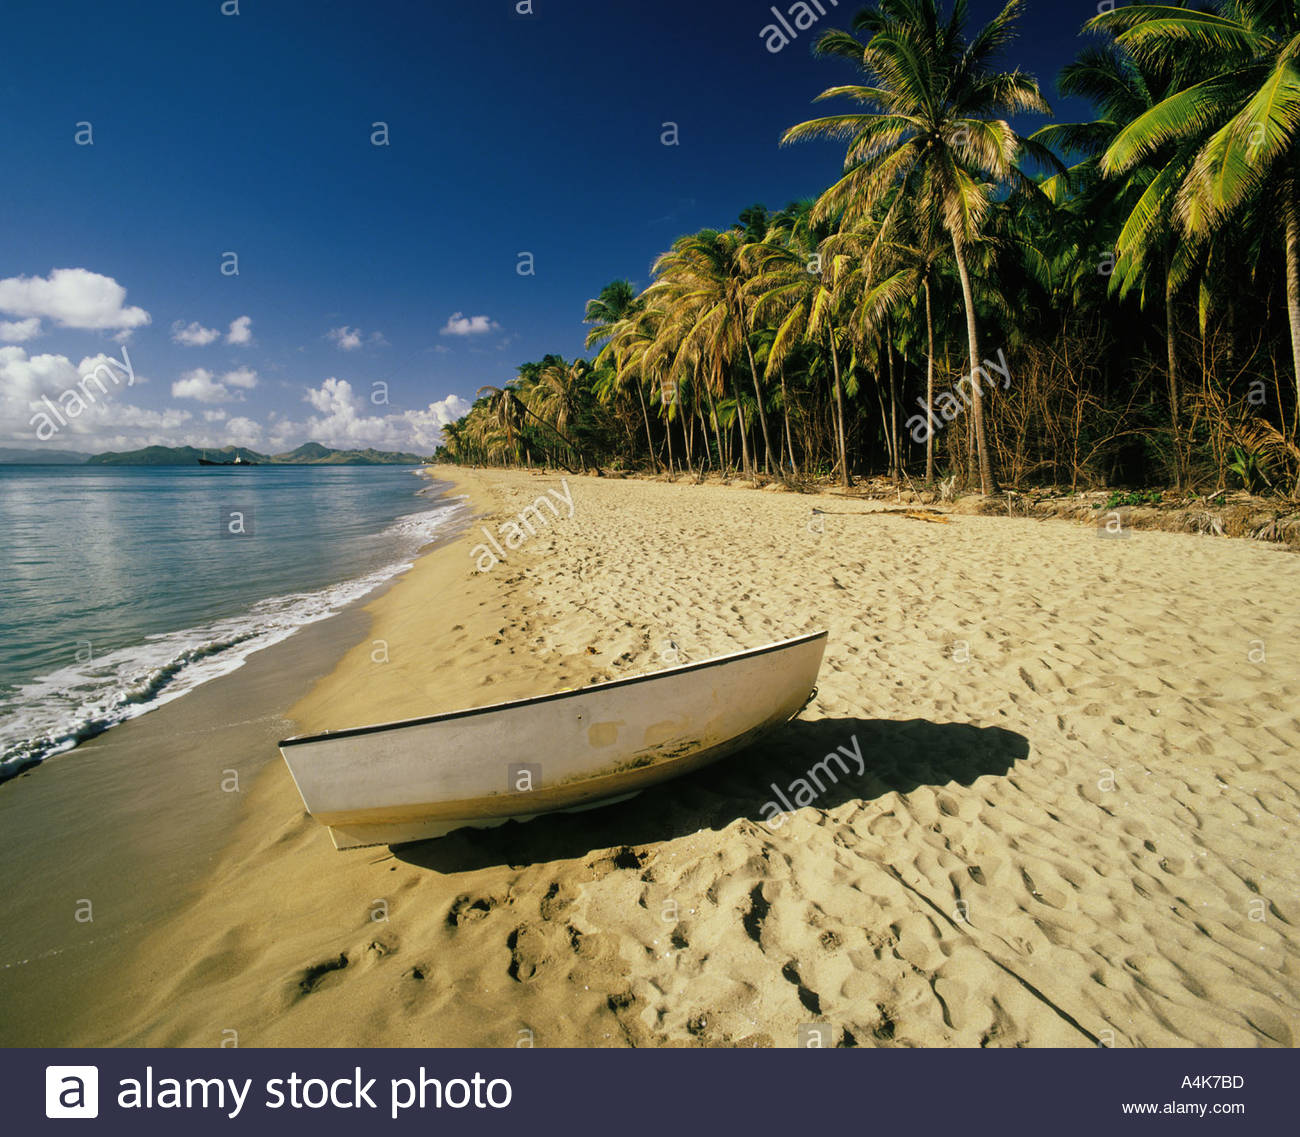 pinneys-beach-on-the-caribbean-island-of